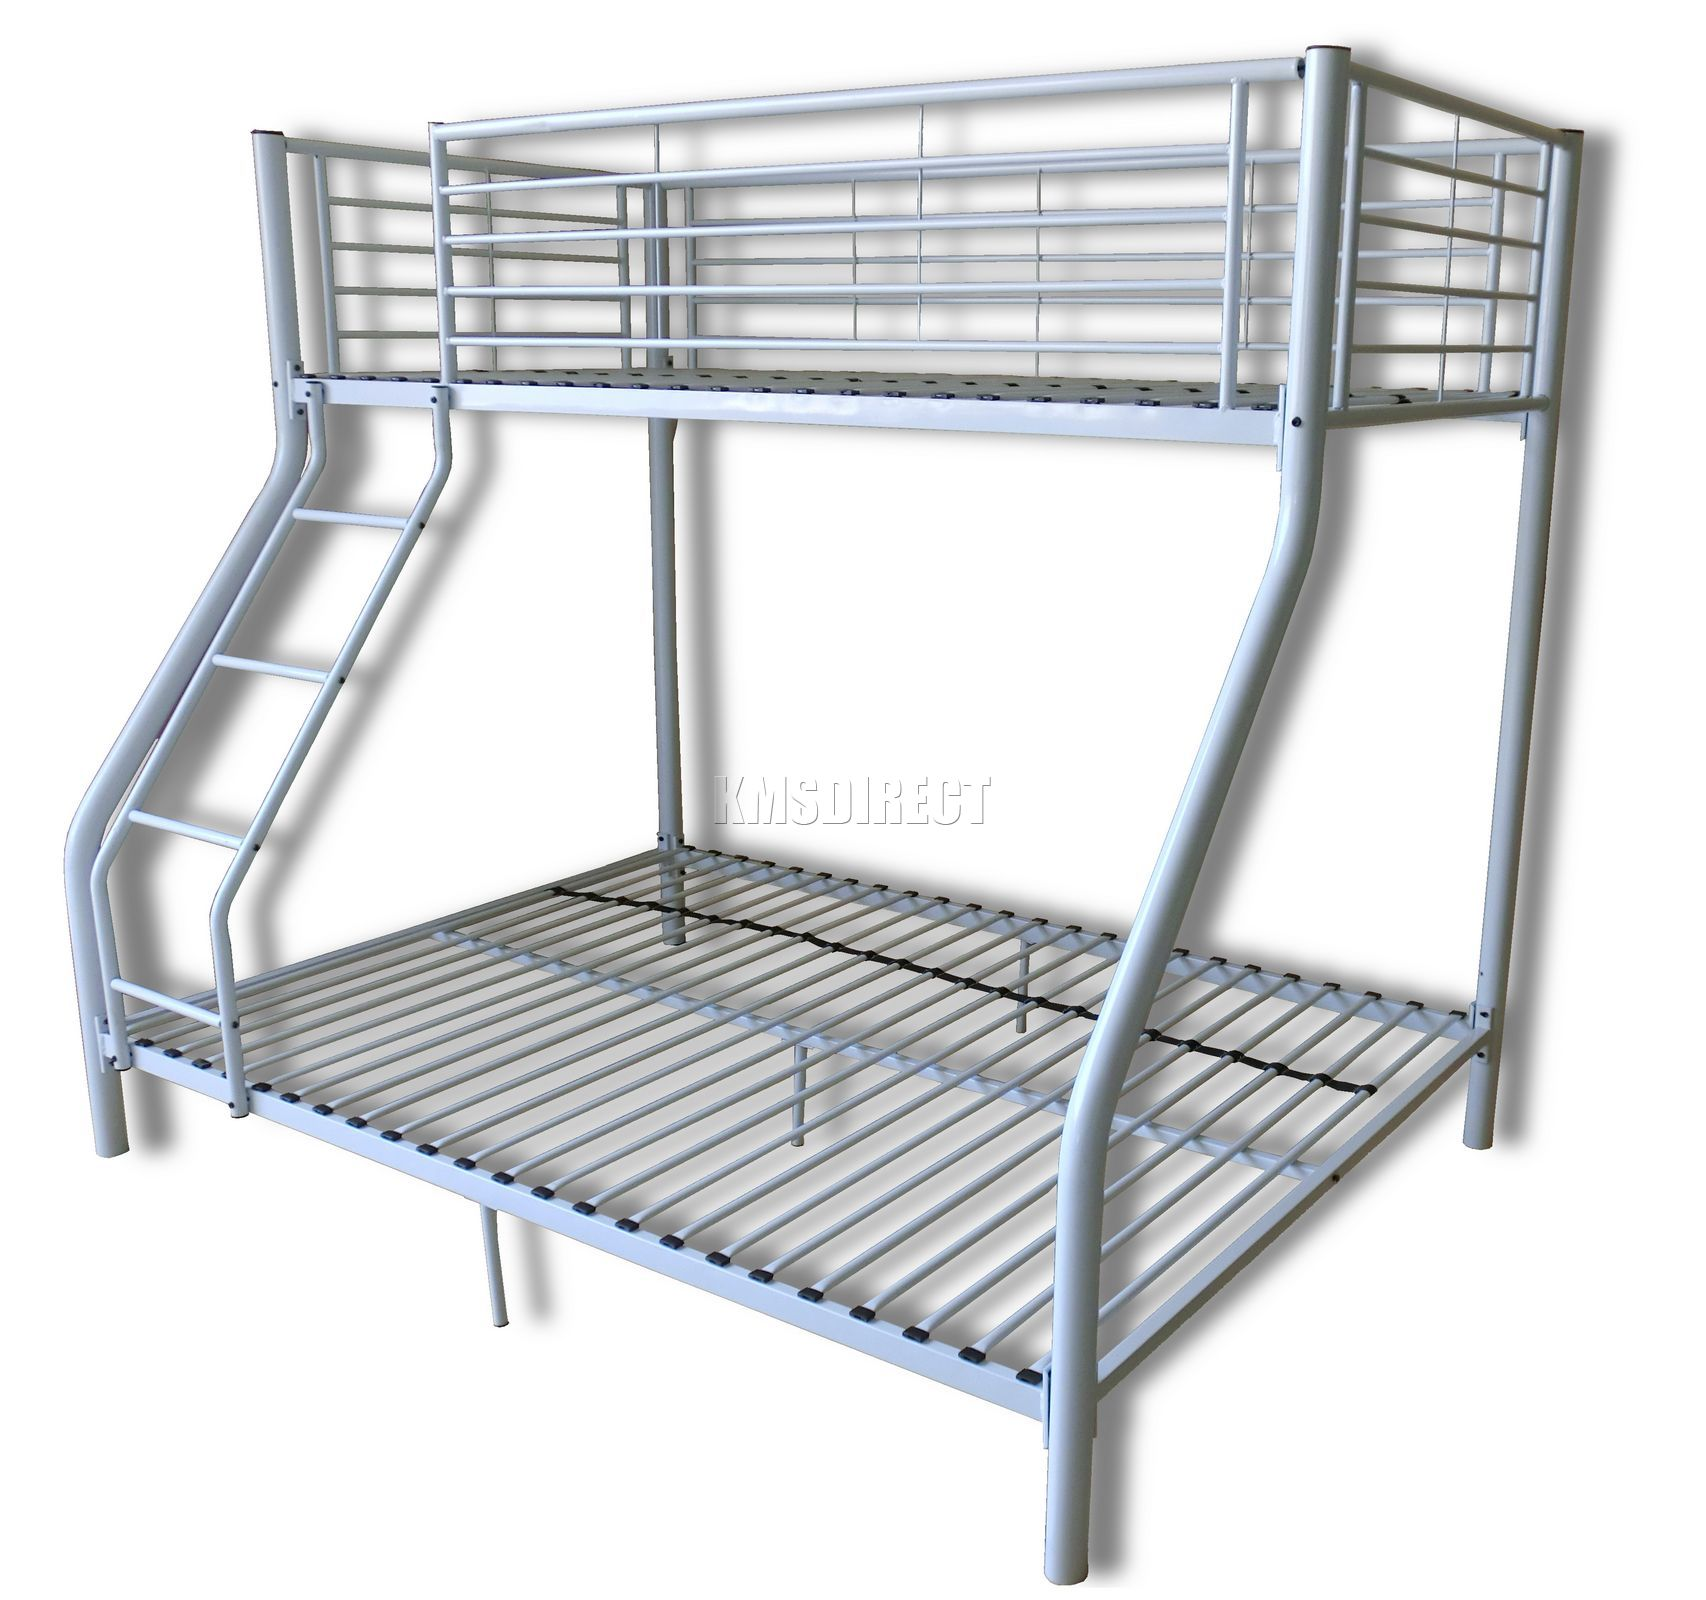 foxhunter new white metal triple children sleeper bunk bed frame no mattress ebay. Black Bedroom Furniture Sets. Home Design Ideas